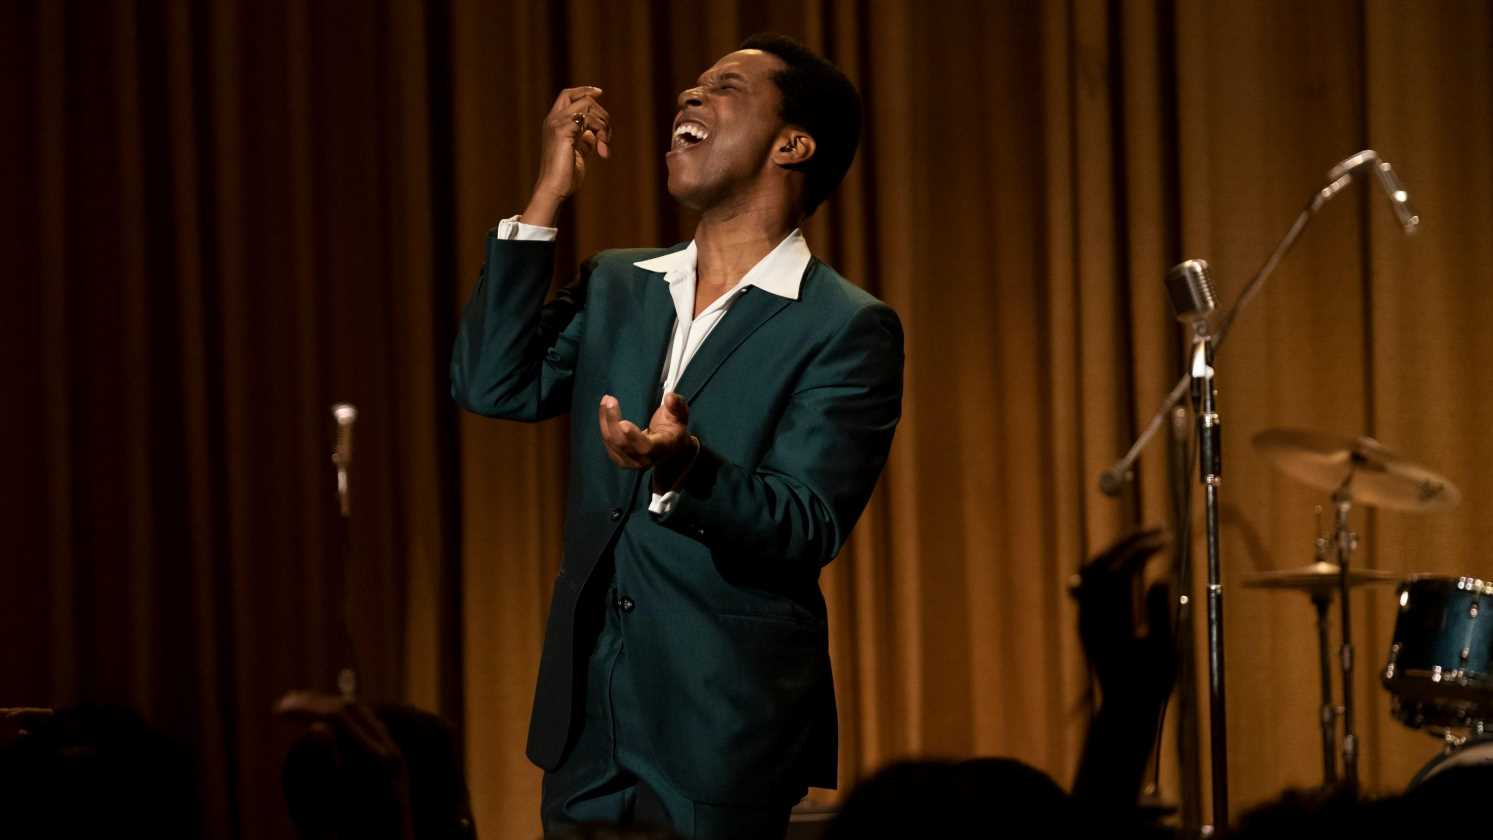 H.E.R., Leslie Odom Jr. are among the musical performers starring in Oscar night pre-show